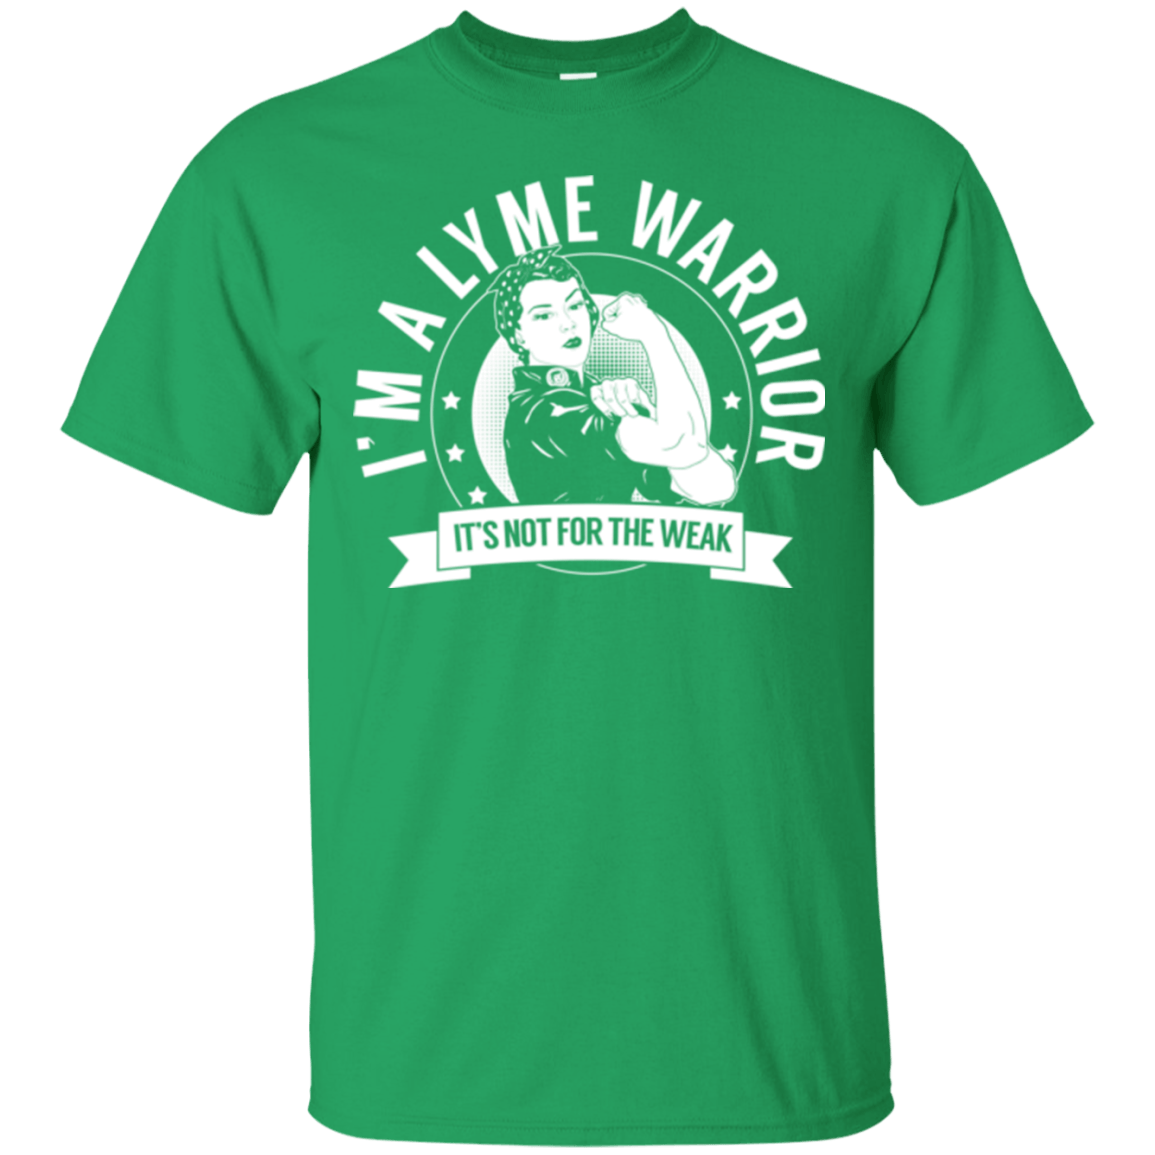 Lyme Disease - Lyme Warrior Not For The Weak Cotton T-Shirt - The Unchargeables